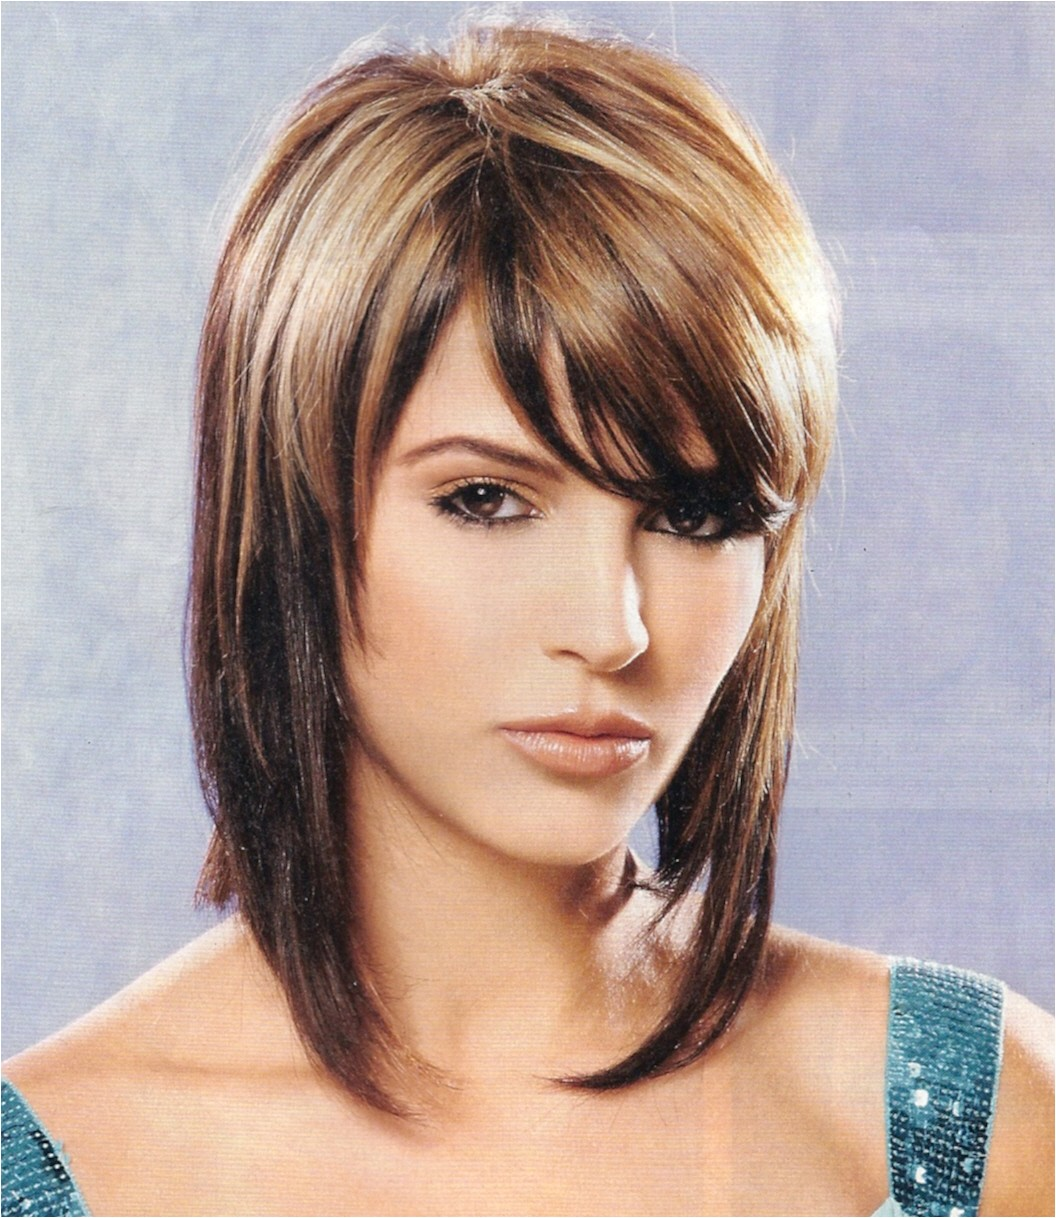 beautiful shoulder length stacked bob haircut looks cool article